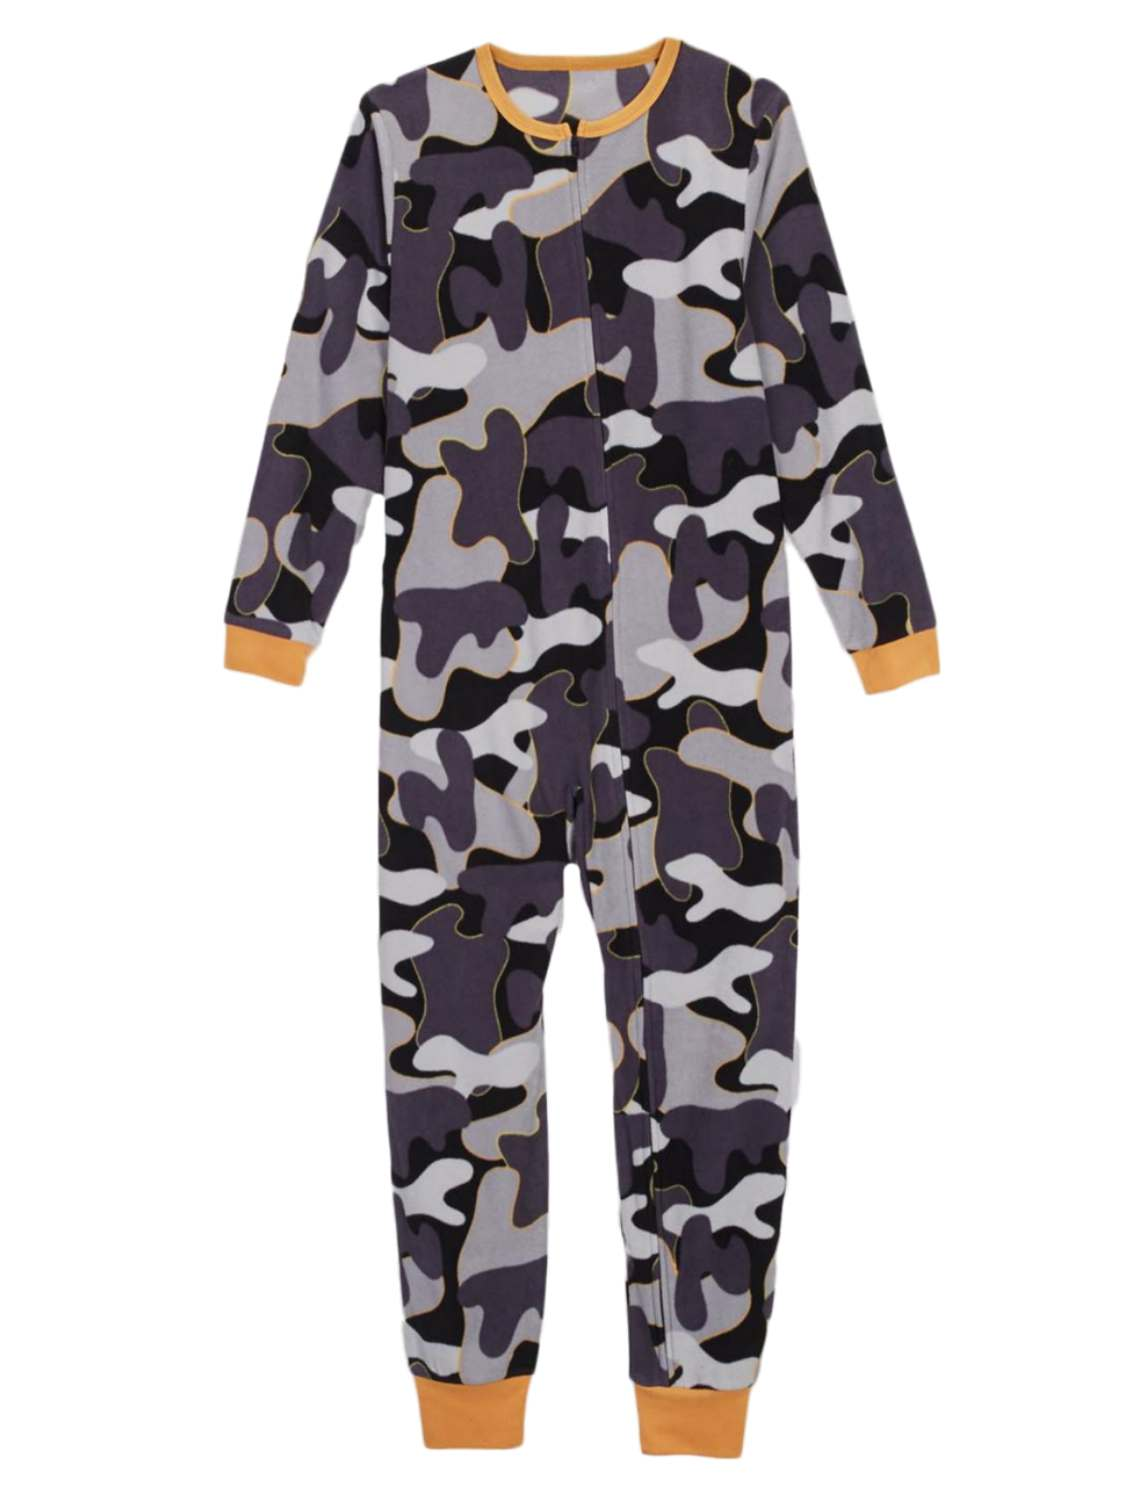 Boys Winter Camouflage Fleece Blanket Sleeper Union Suit